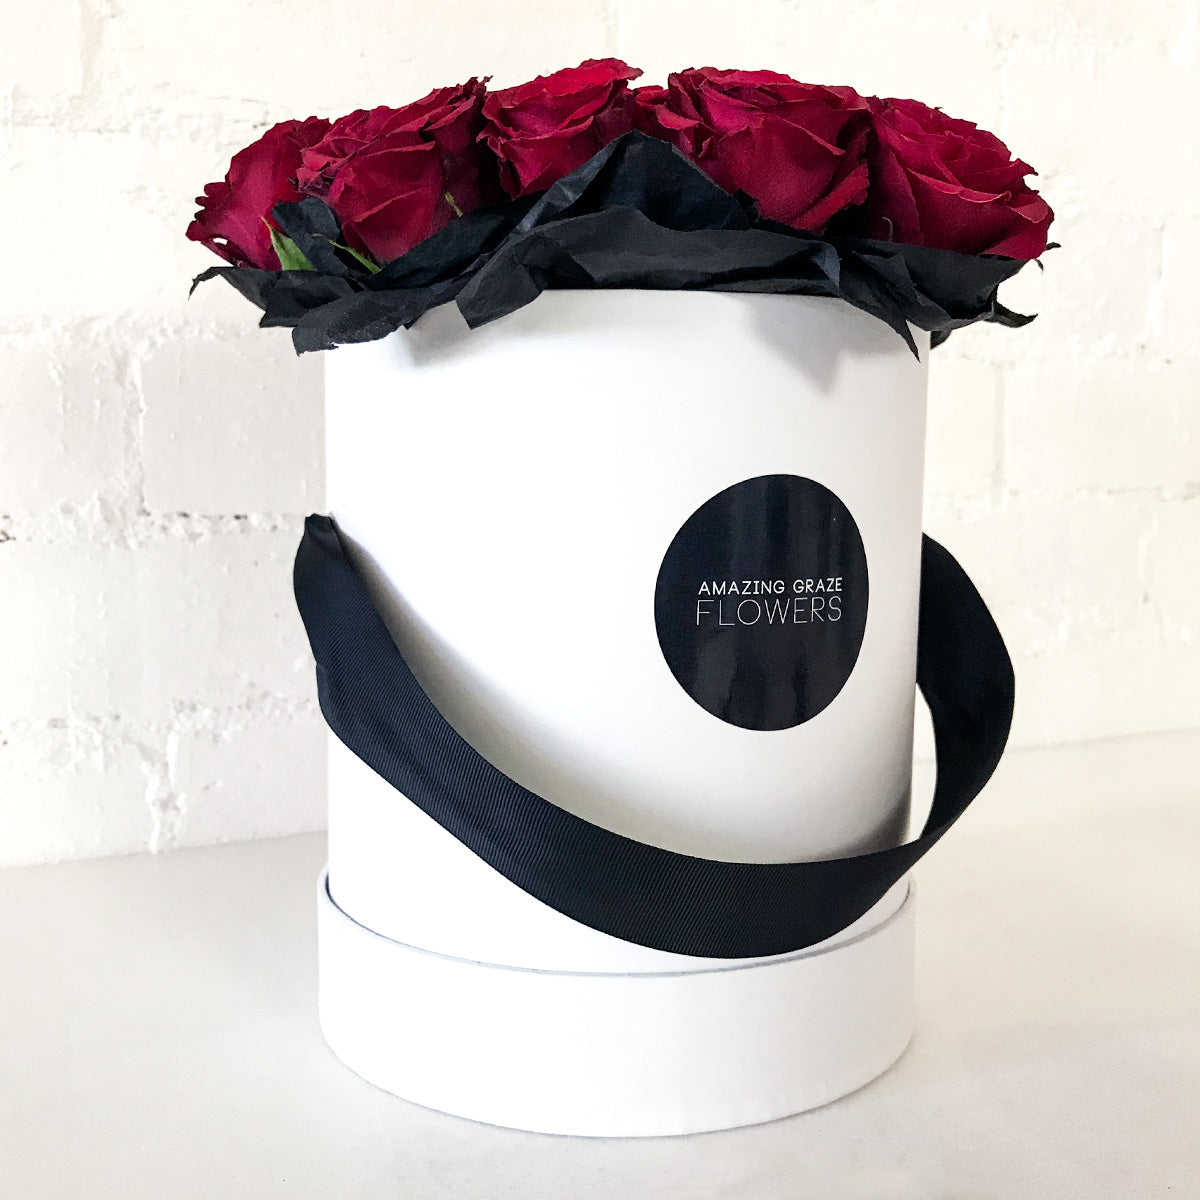 18 Red Roses - Hat Box + Teddy Bear + Champagne